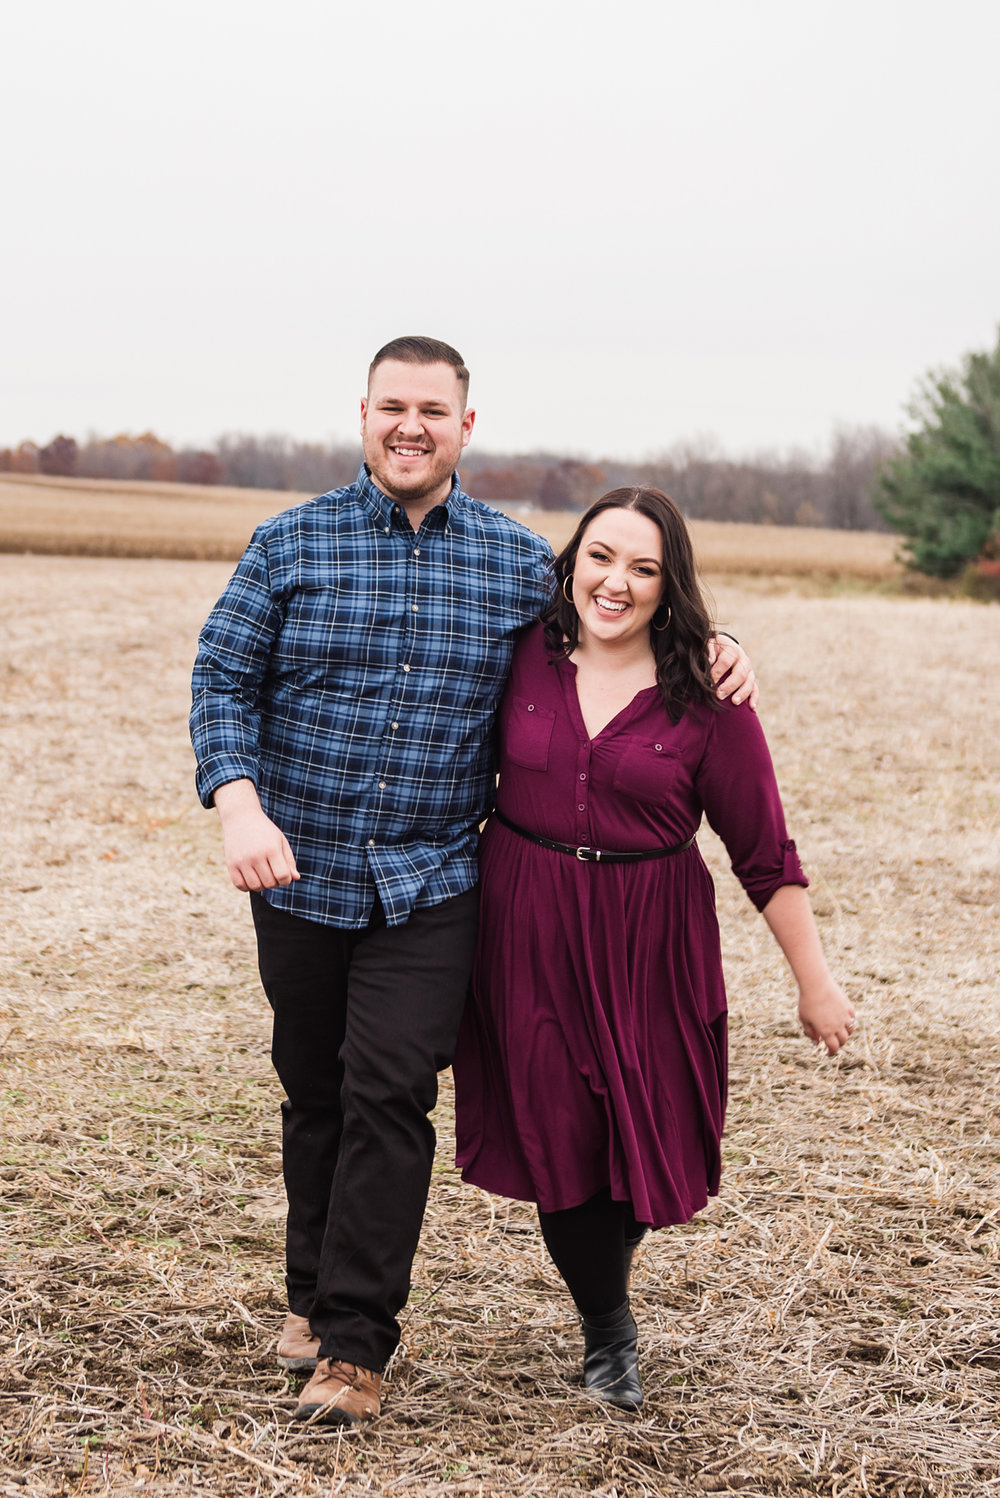 Tinker_Nature_Park_Rochester_Engagement_Session_JILL_STUDIO_Rochester_NY_Photographer_DSC_0567.jpg